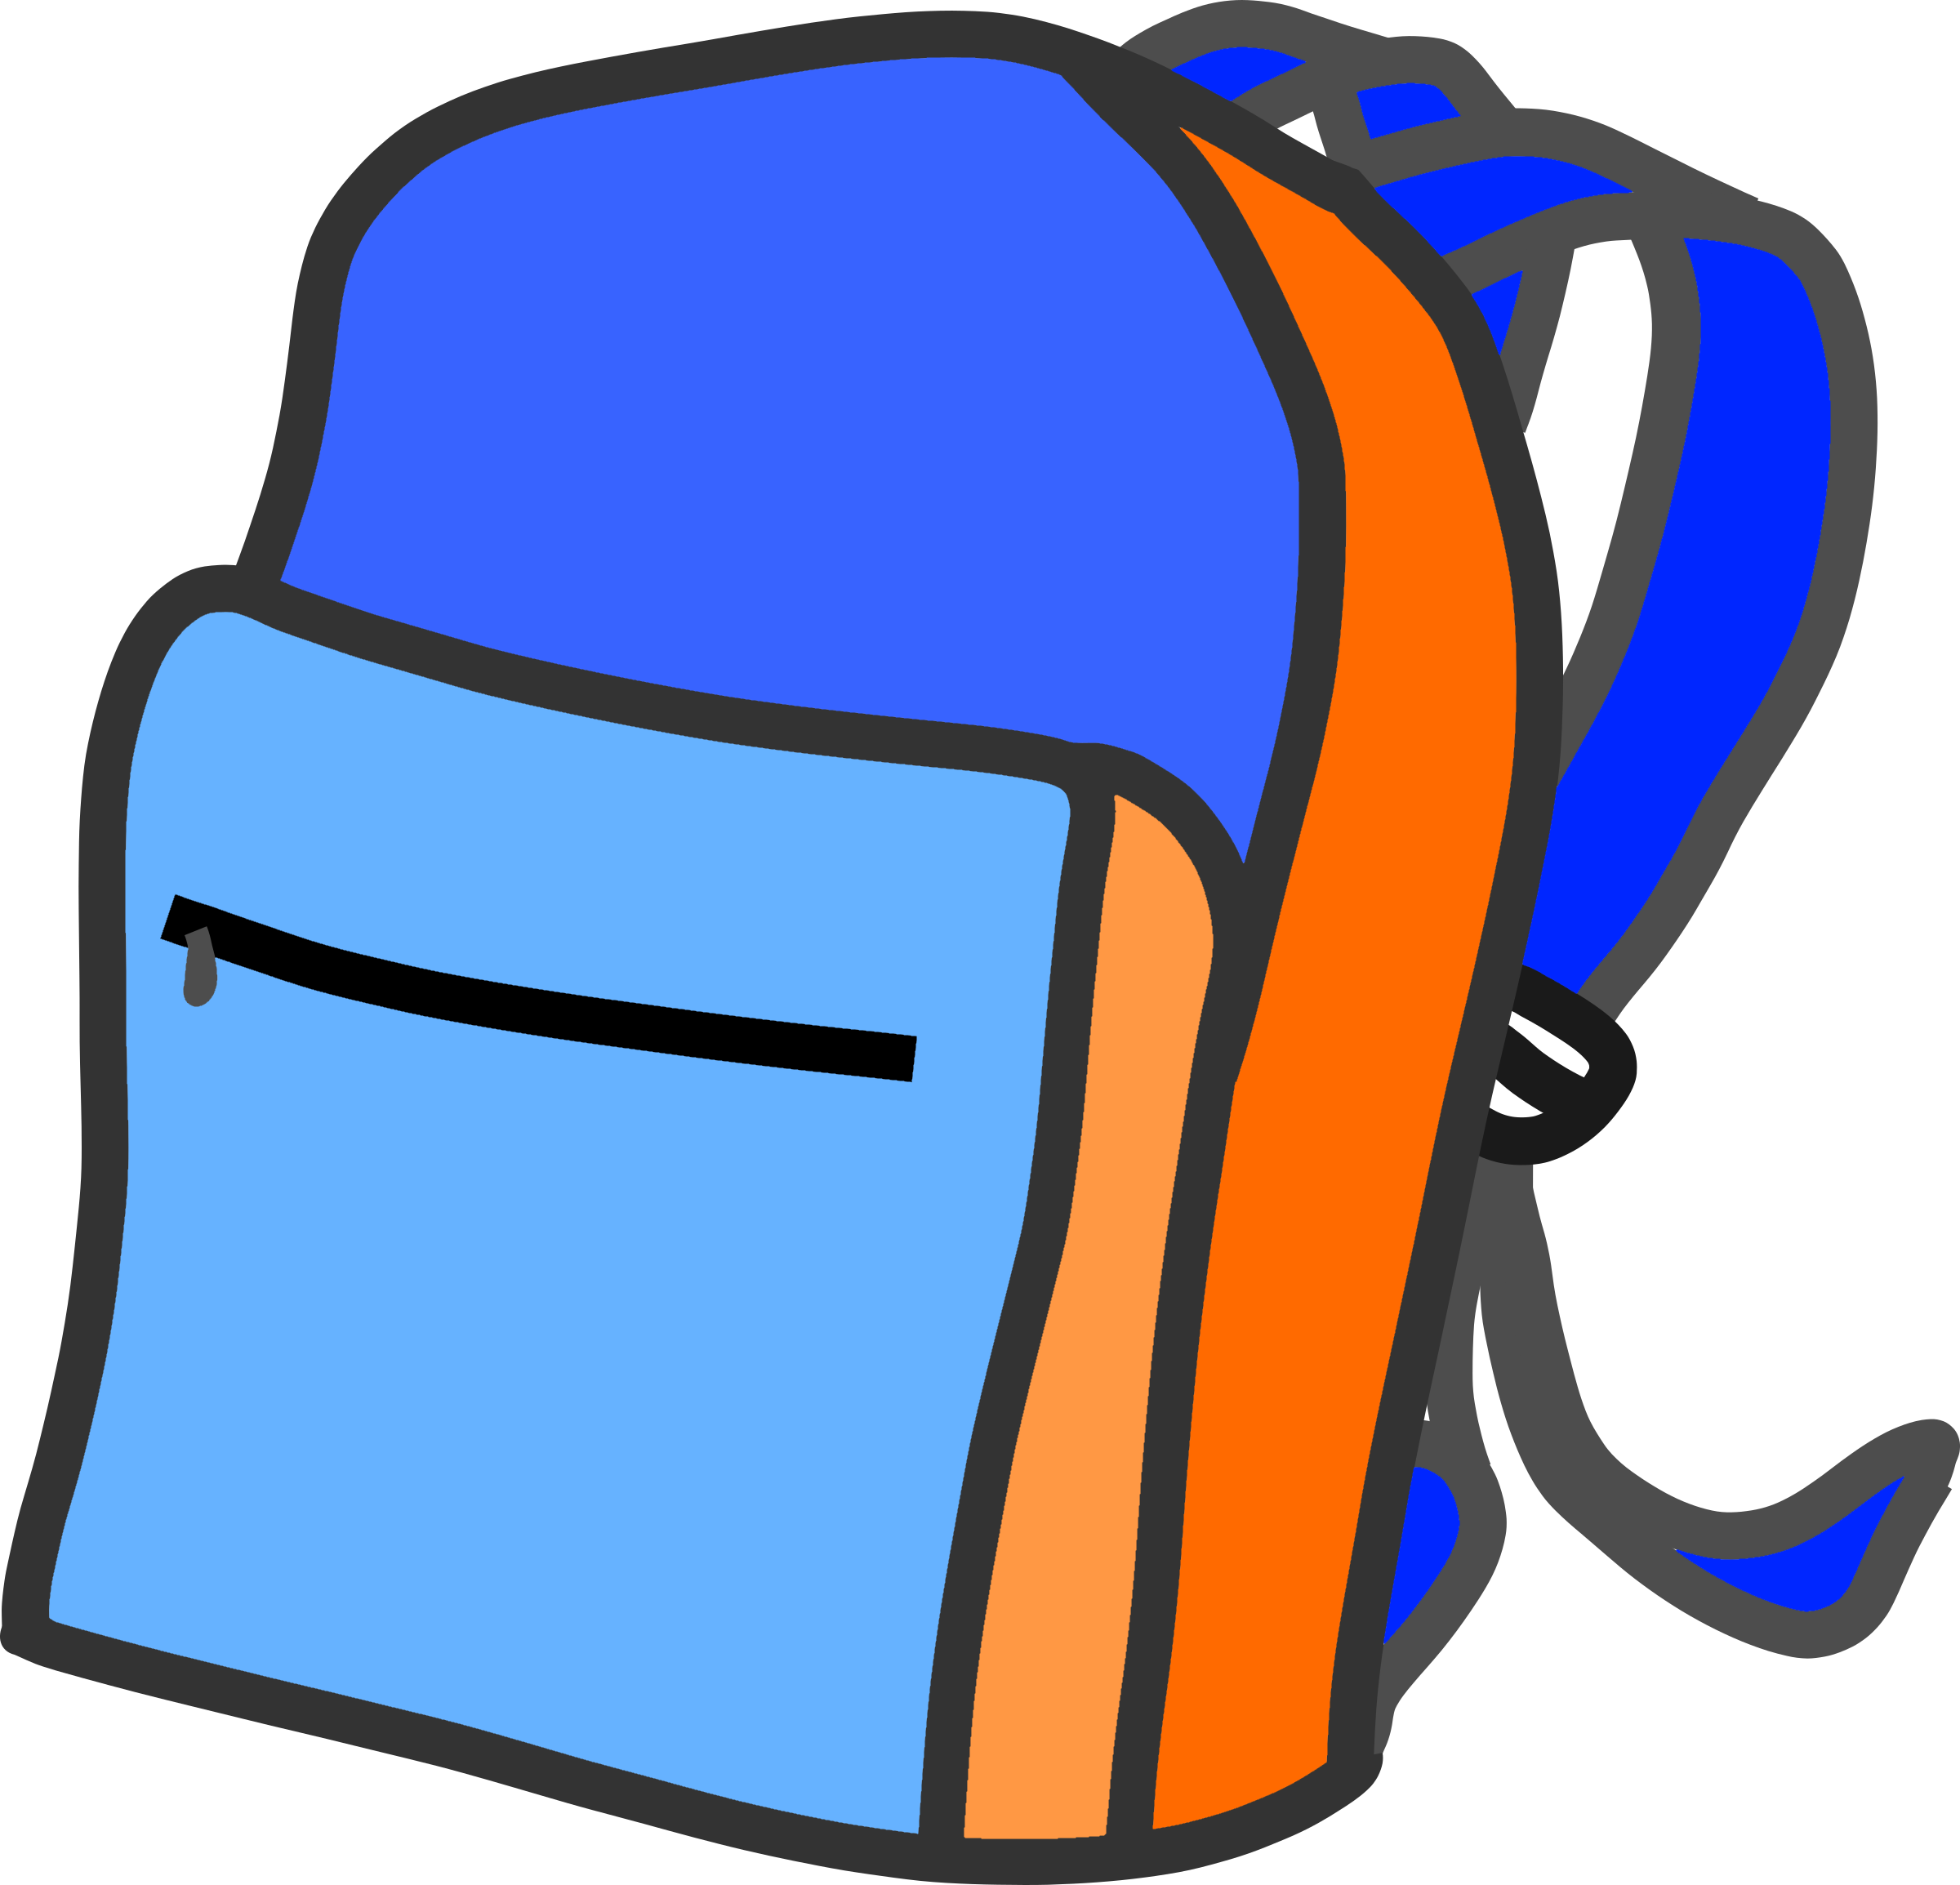 School bags clipart graphic transparent Clipart - School backpack graphic transparent